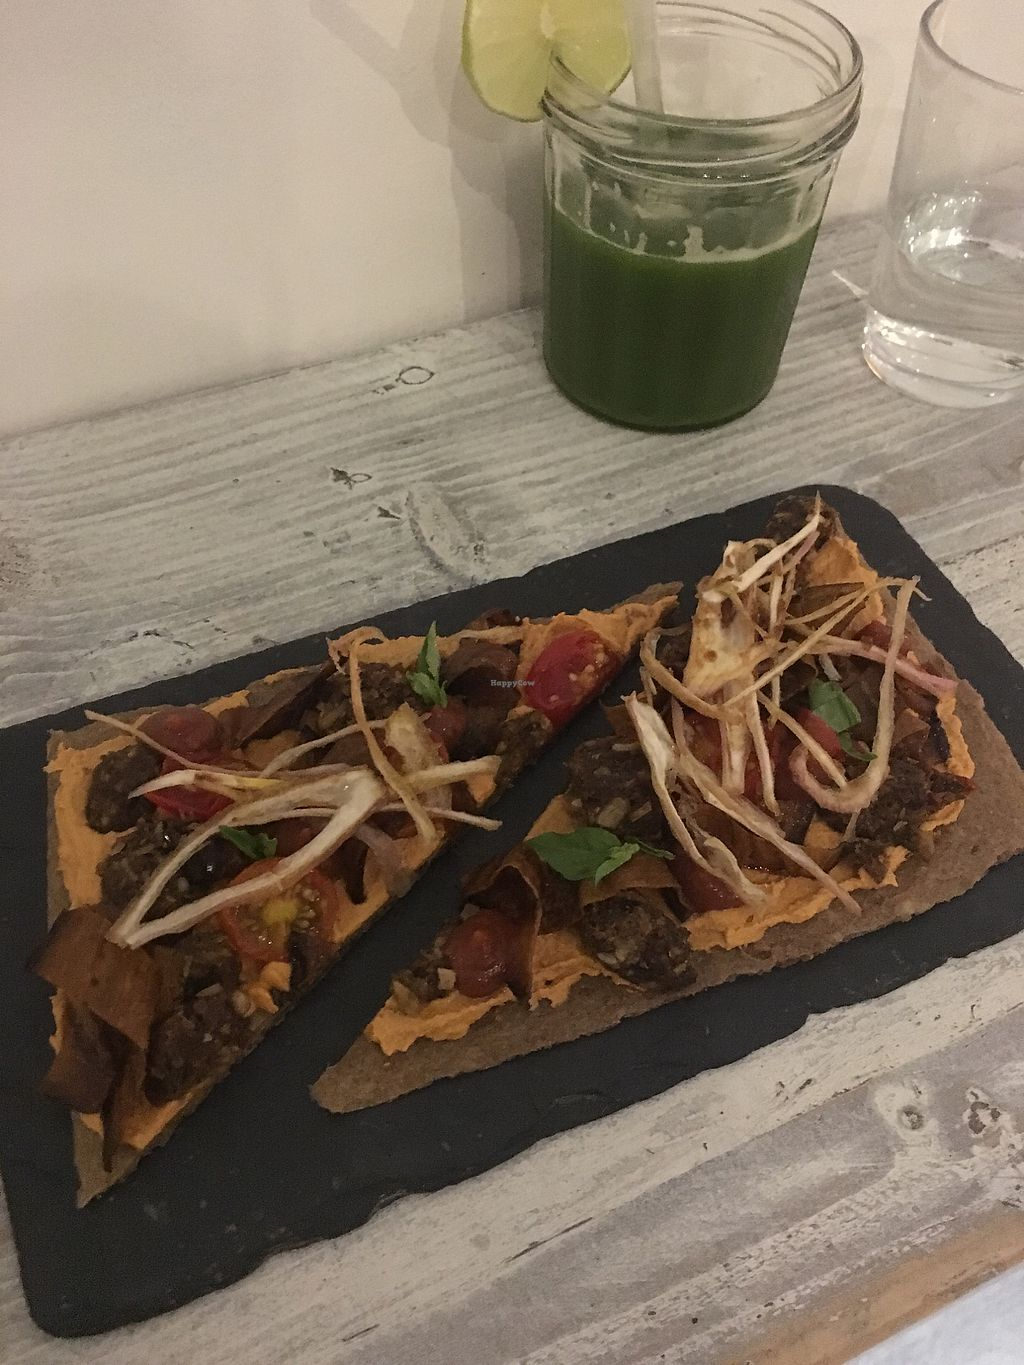 """Photo of CLOSED: Nama Artisan Raw Foods  by <a href=""""/members/profile/BecCarter"""">BecCarter</a> <br/>No Meat Pizza <br/> January 15, 2018  - <a href='/contact/abuse/image/36686/346932'>Report</a>"""